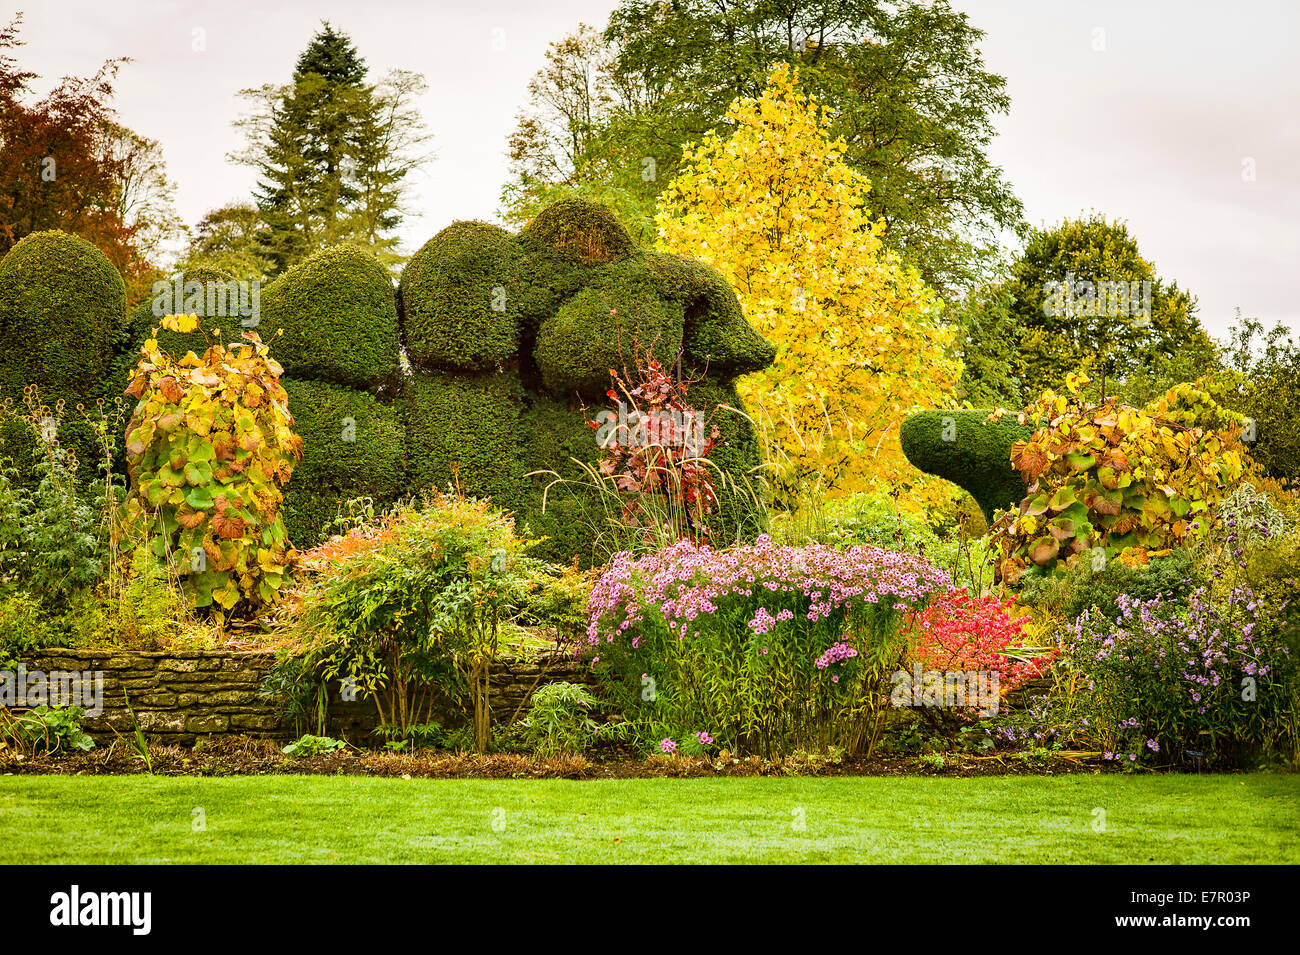 Colour and shapes in The Courts garden in the autumn - Stock Image